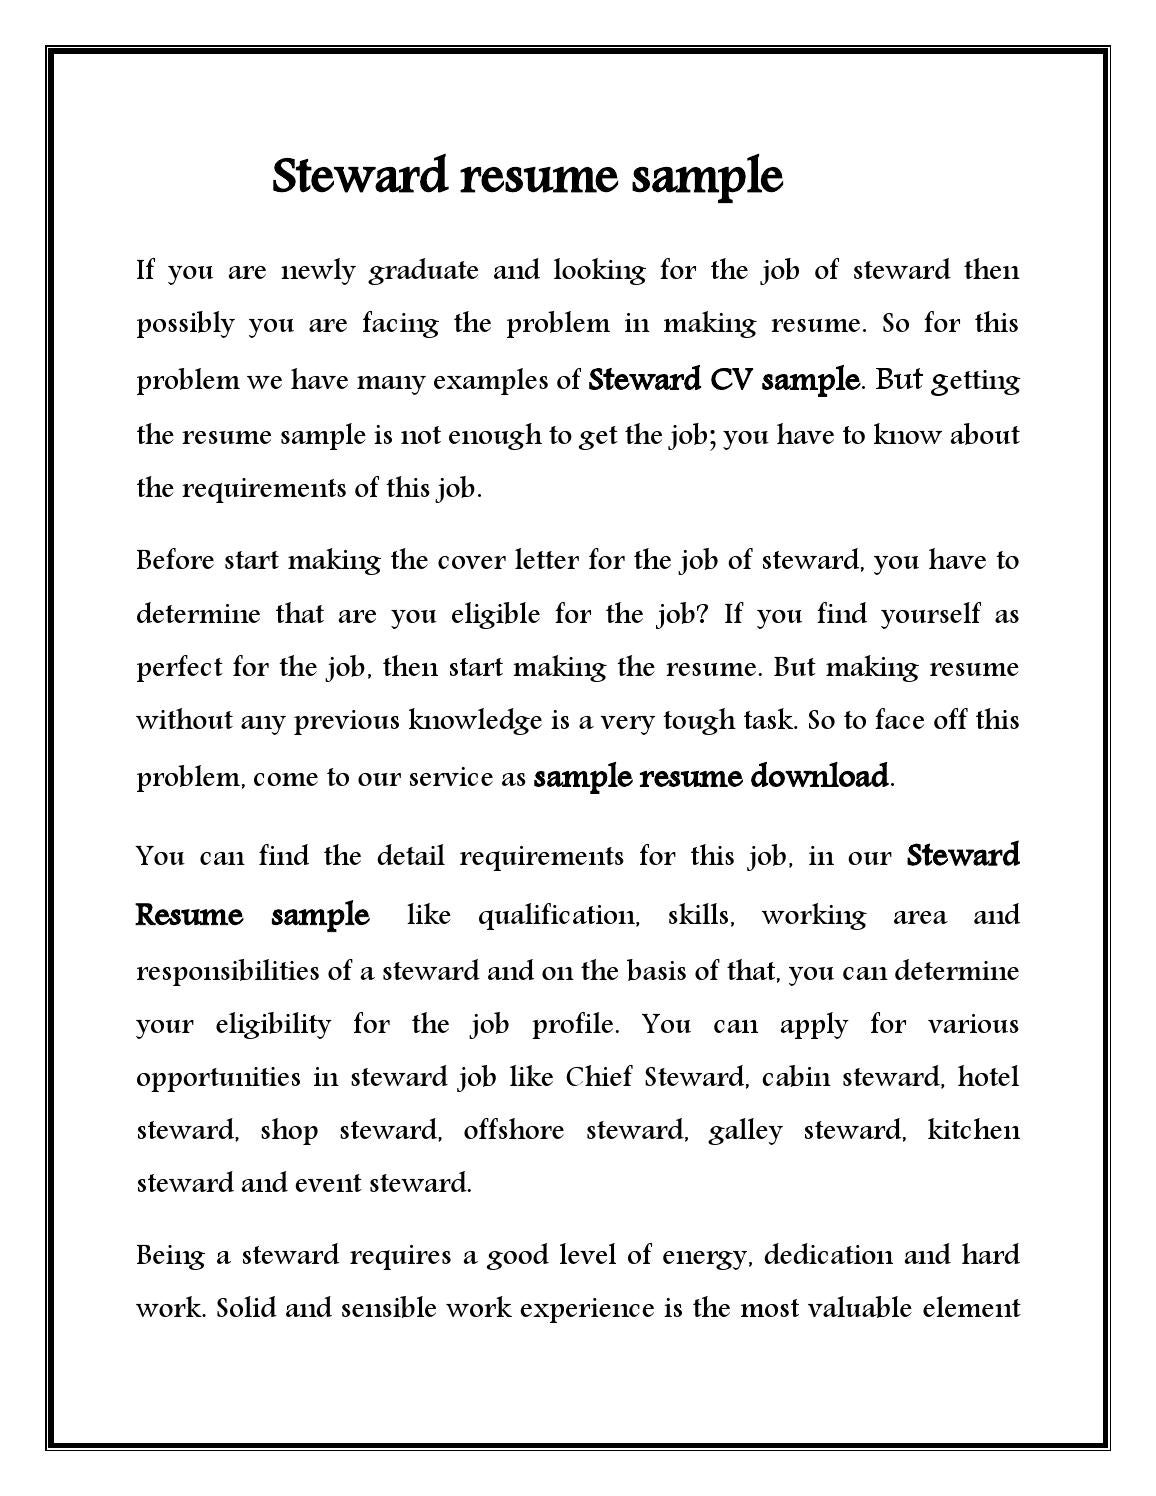 how to start a covering letter for a cv - steward cv sample for hotel stewerd job by